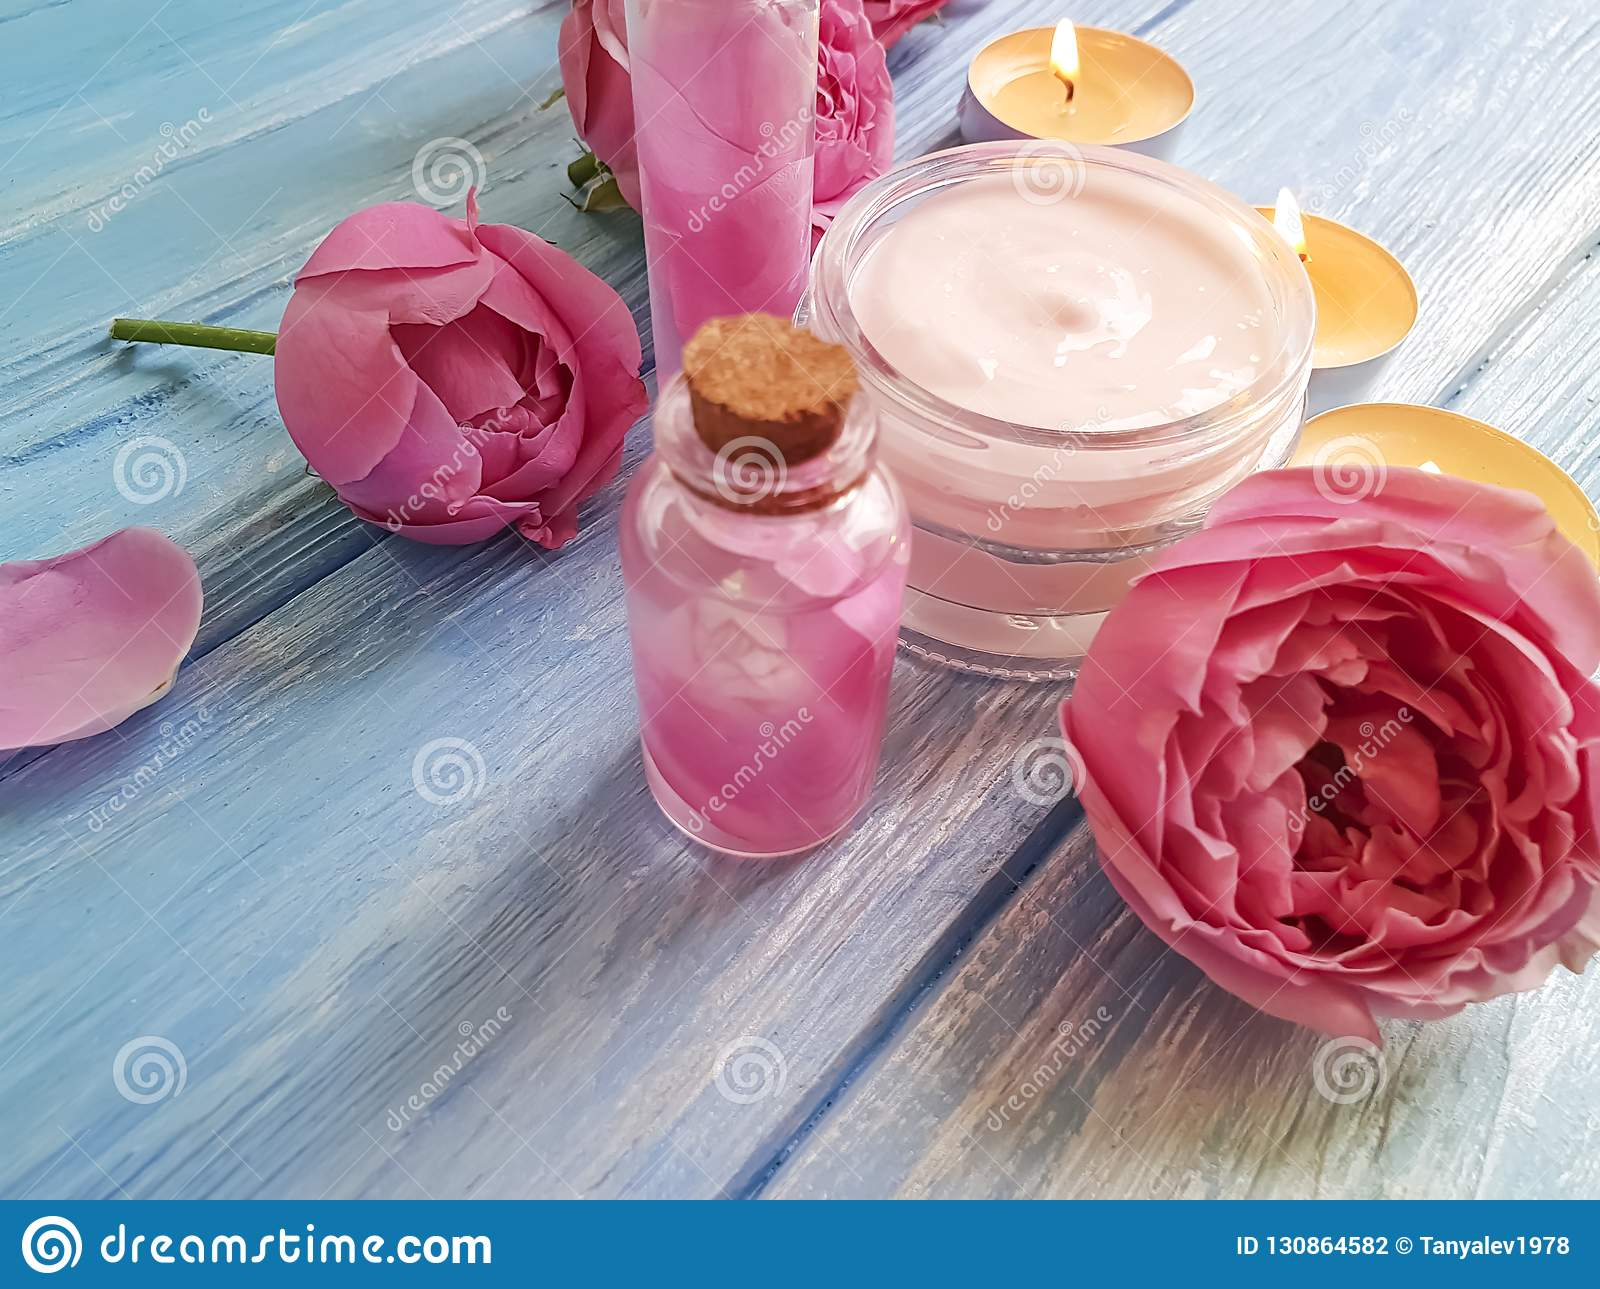 cosmetic cream , rose natural composition beautiful essence, candle on wooden background